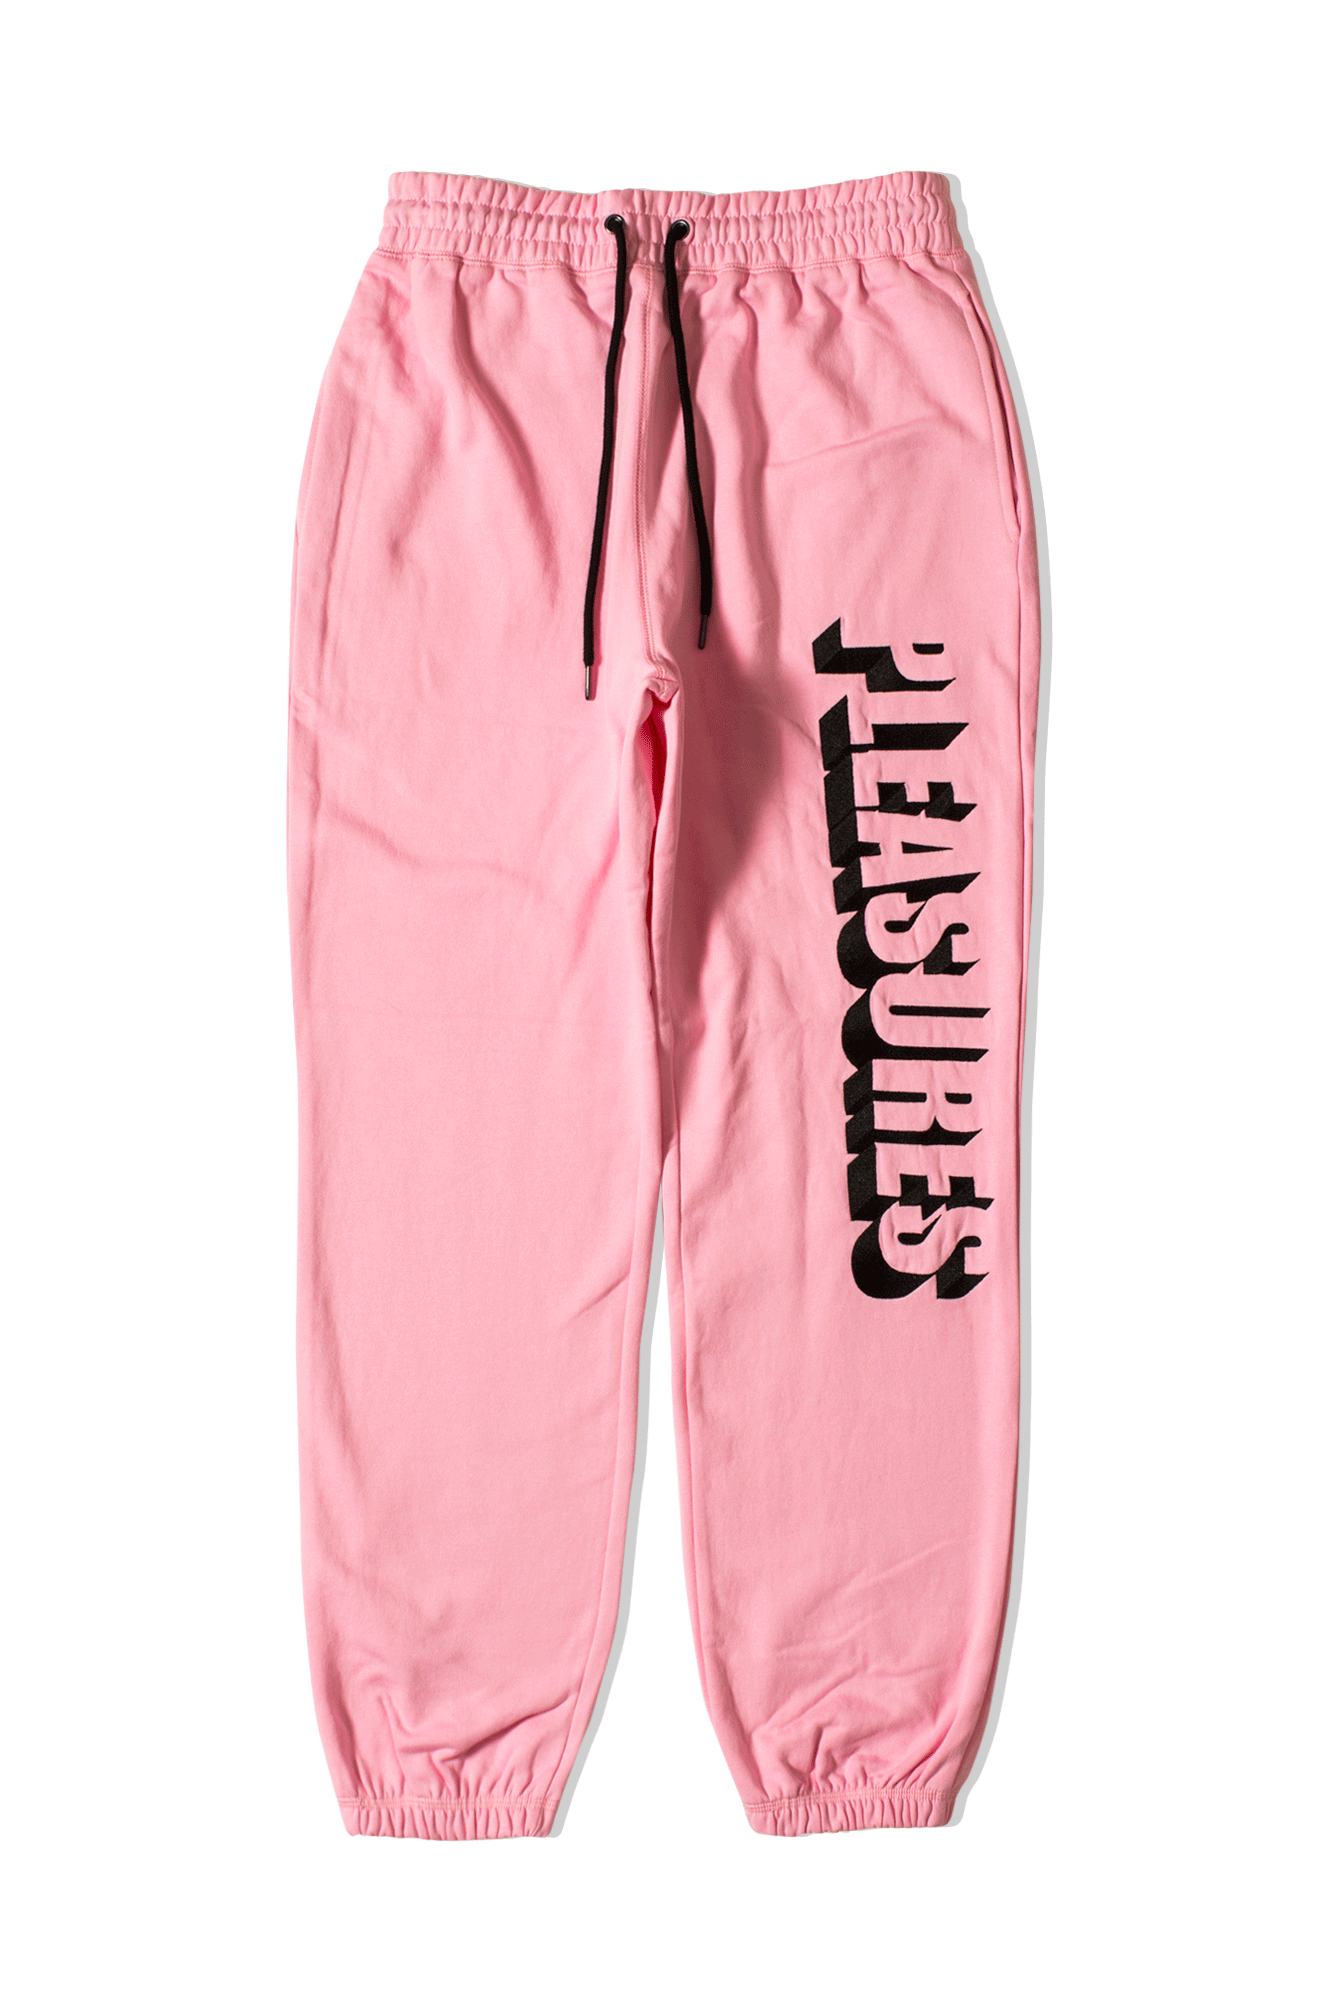 Harvard Embroidered Sweatpant Pink